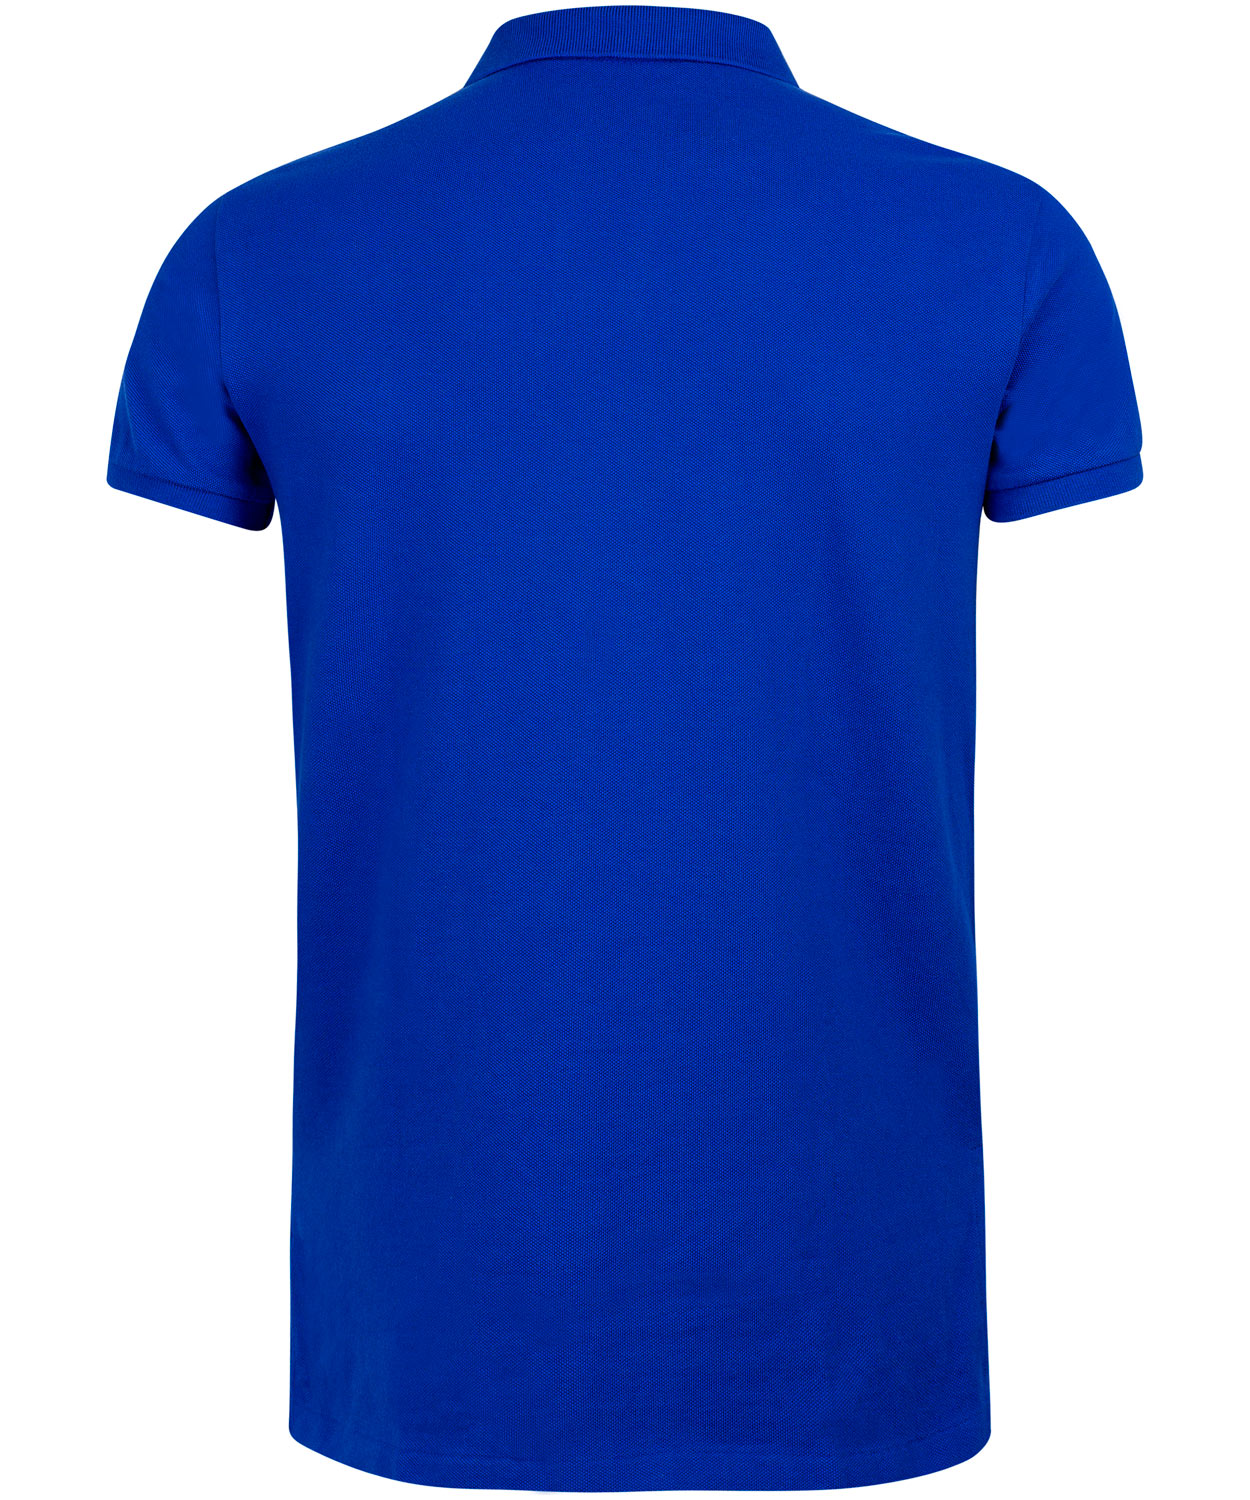 Polo Ralph Lauren Royal Blue Polo Shirt In Blue For Men Lyst